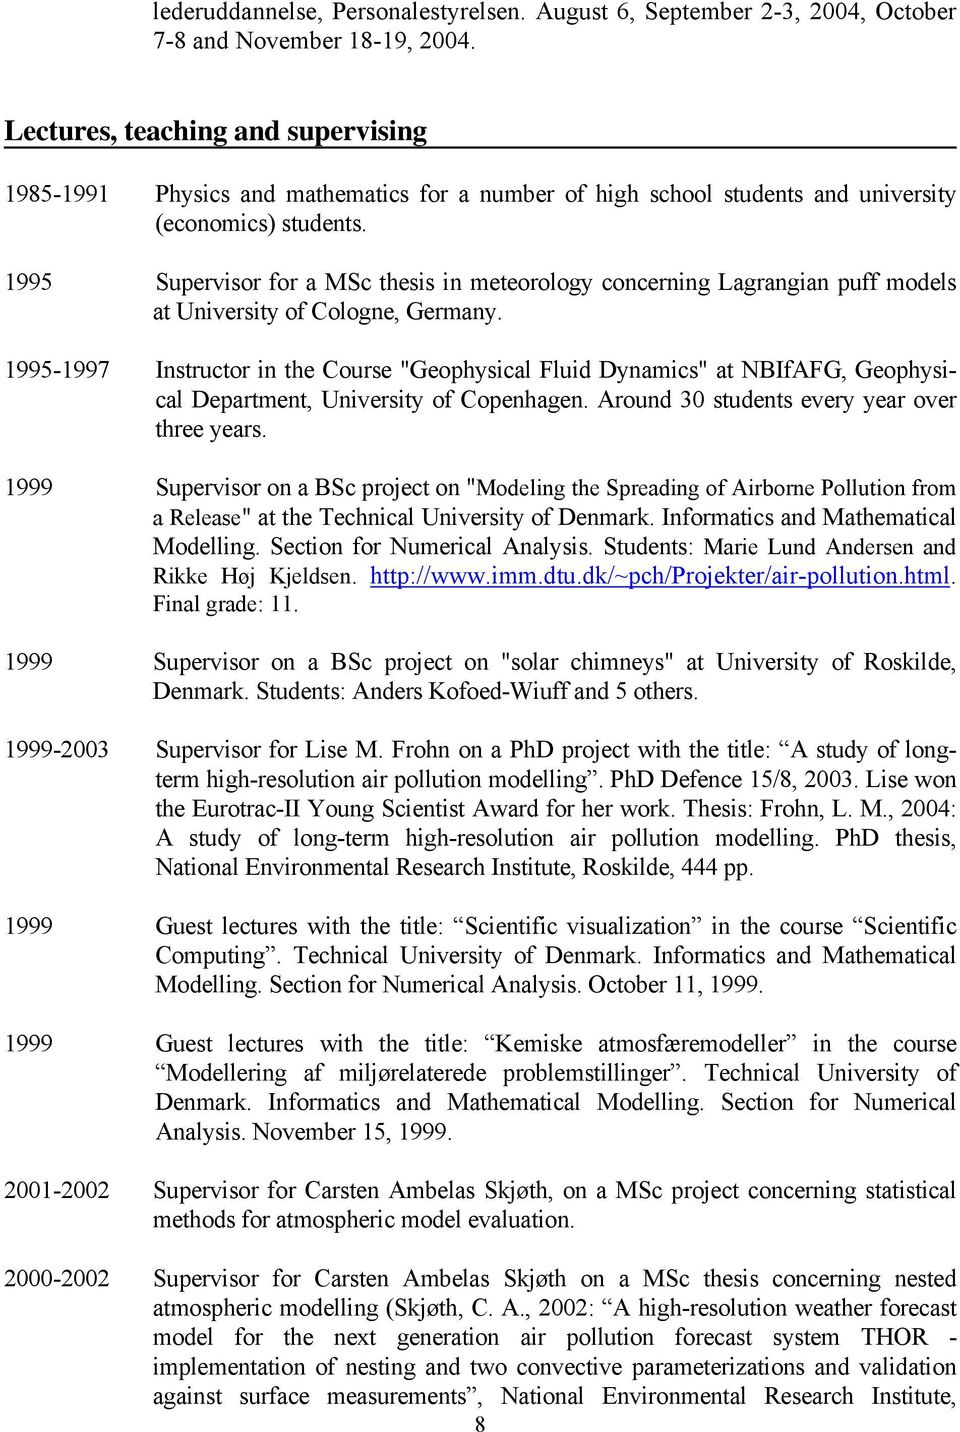 1995 Supervisor for a MSc thesis in meteorology concerning Lagrangian puff models at University of Cologne, Germany.